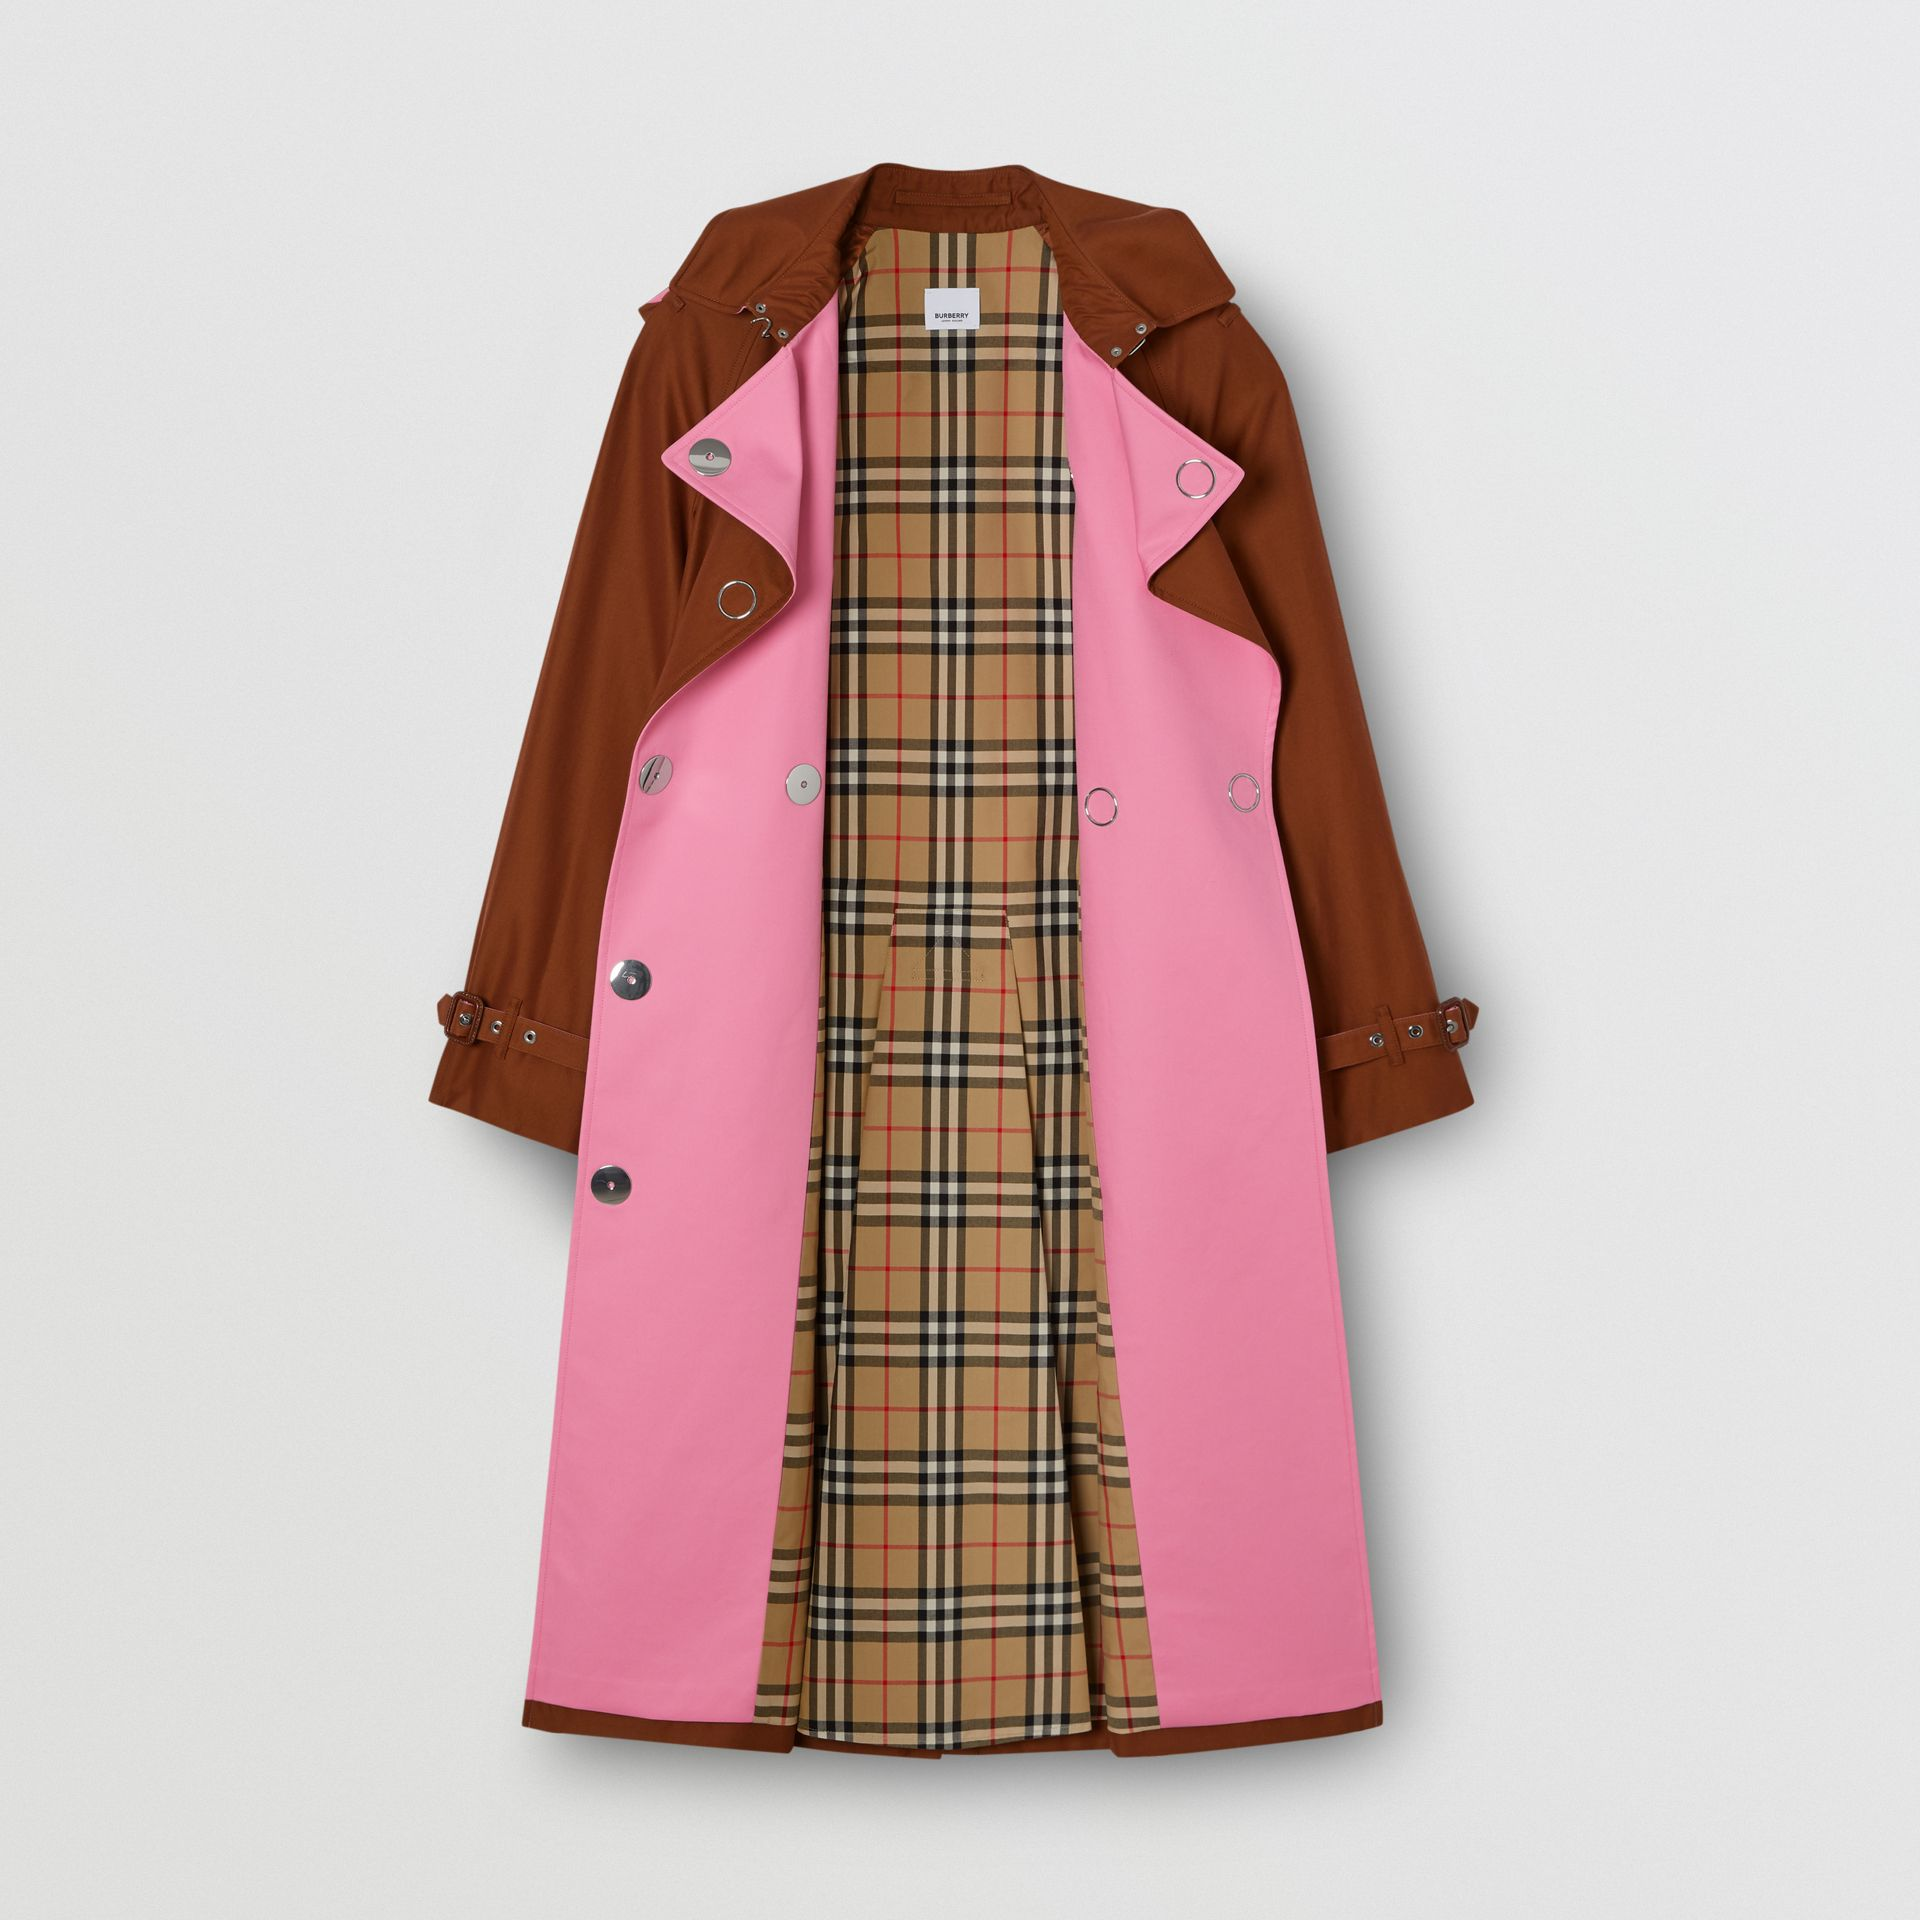 Colour Block Cotton Gabardine Trench Coat in Chestnut Brown - Women | Burberry - gallery image 7